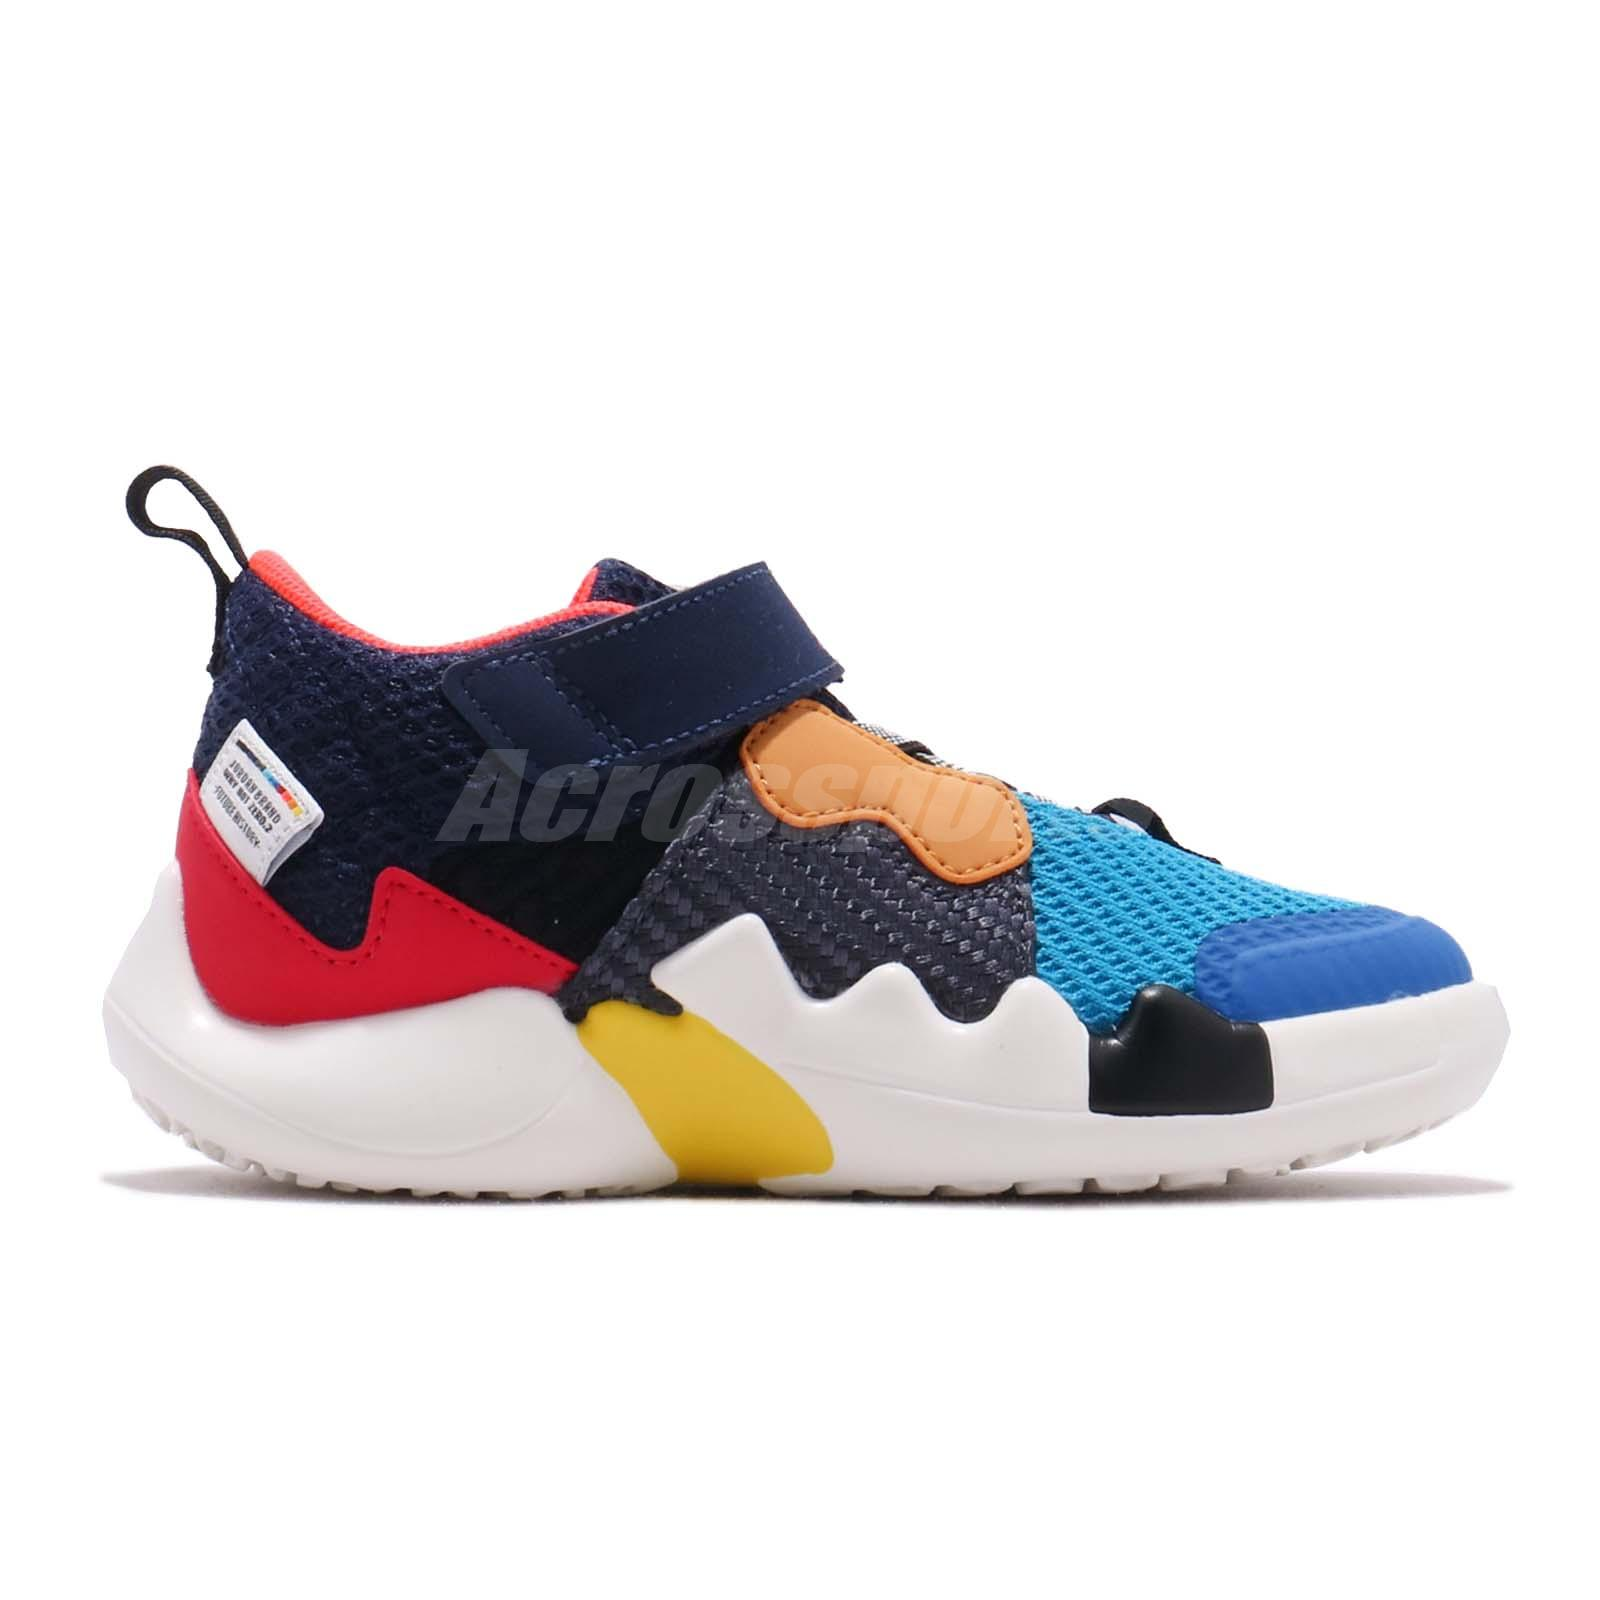 52f50b7d379b59 Nike Jordan Why Not Zer0.2 TD Russell Westbrook Toddler Infant Shoes ...